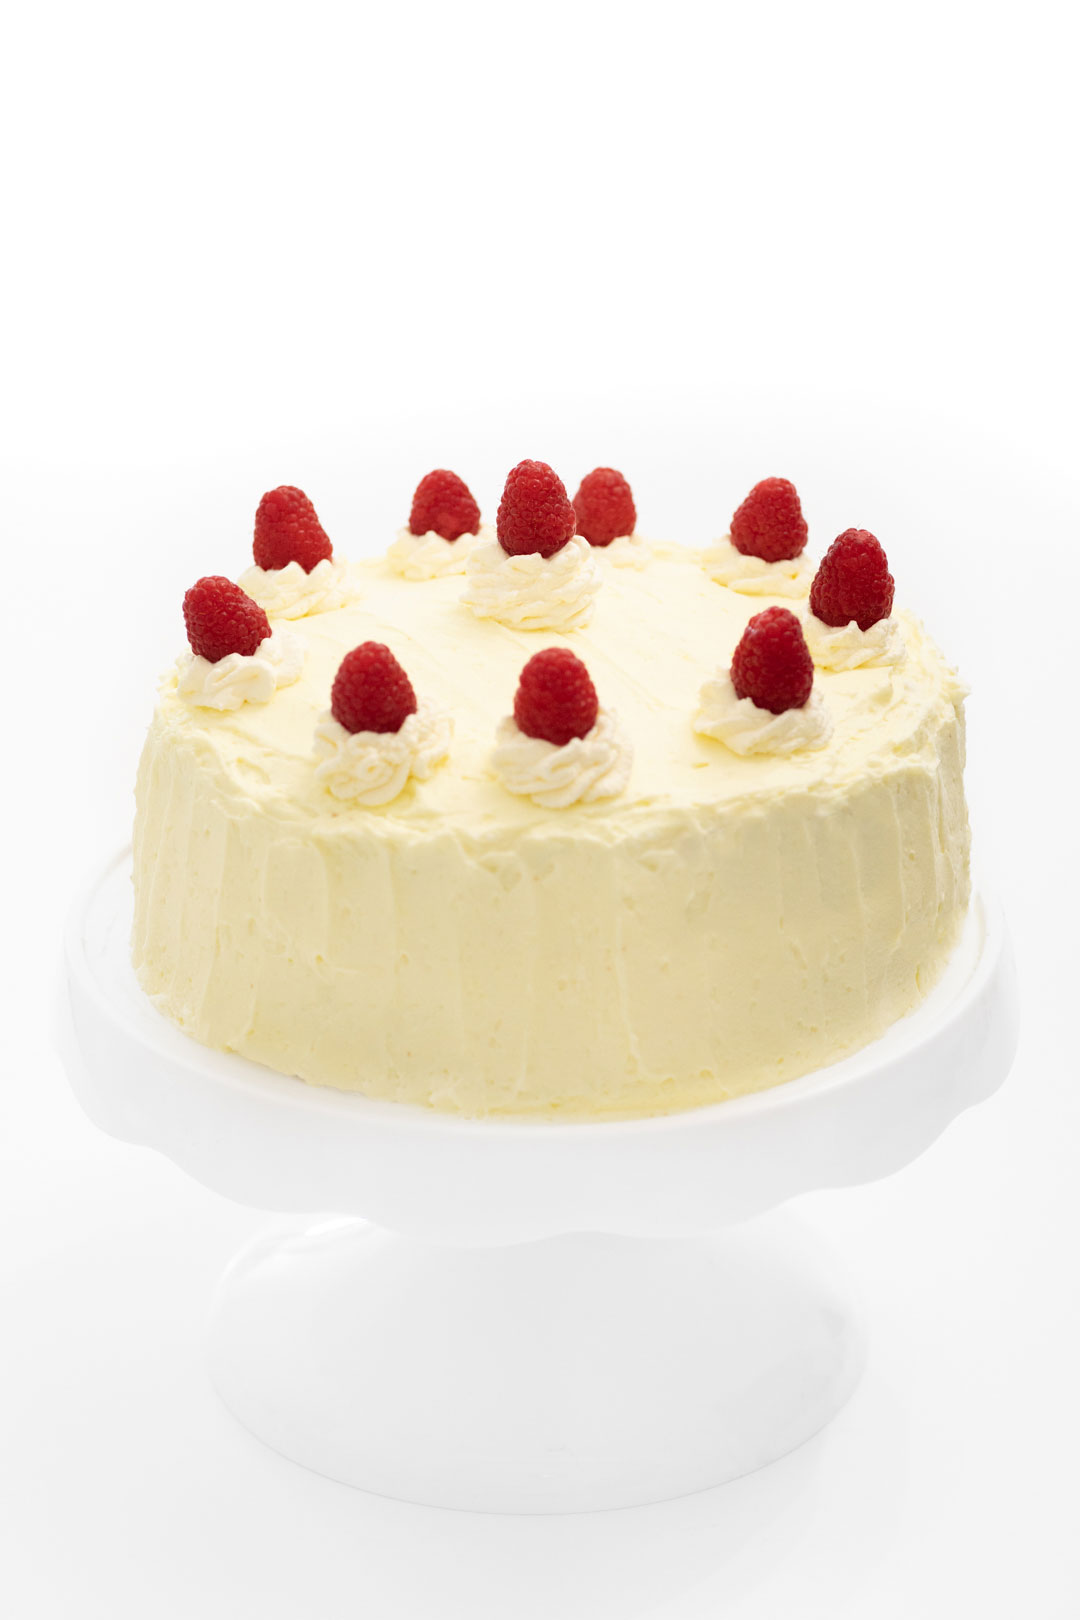 Raspberry cake with boxed mix, pudding mix and a crazy delish whipped lemon frosting. So easy. So good.